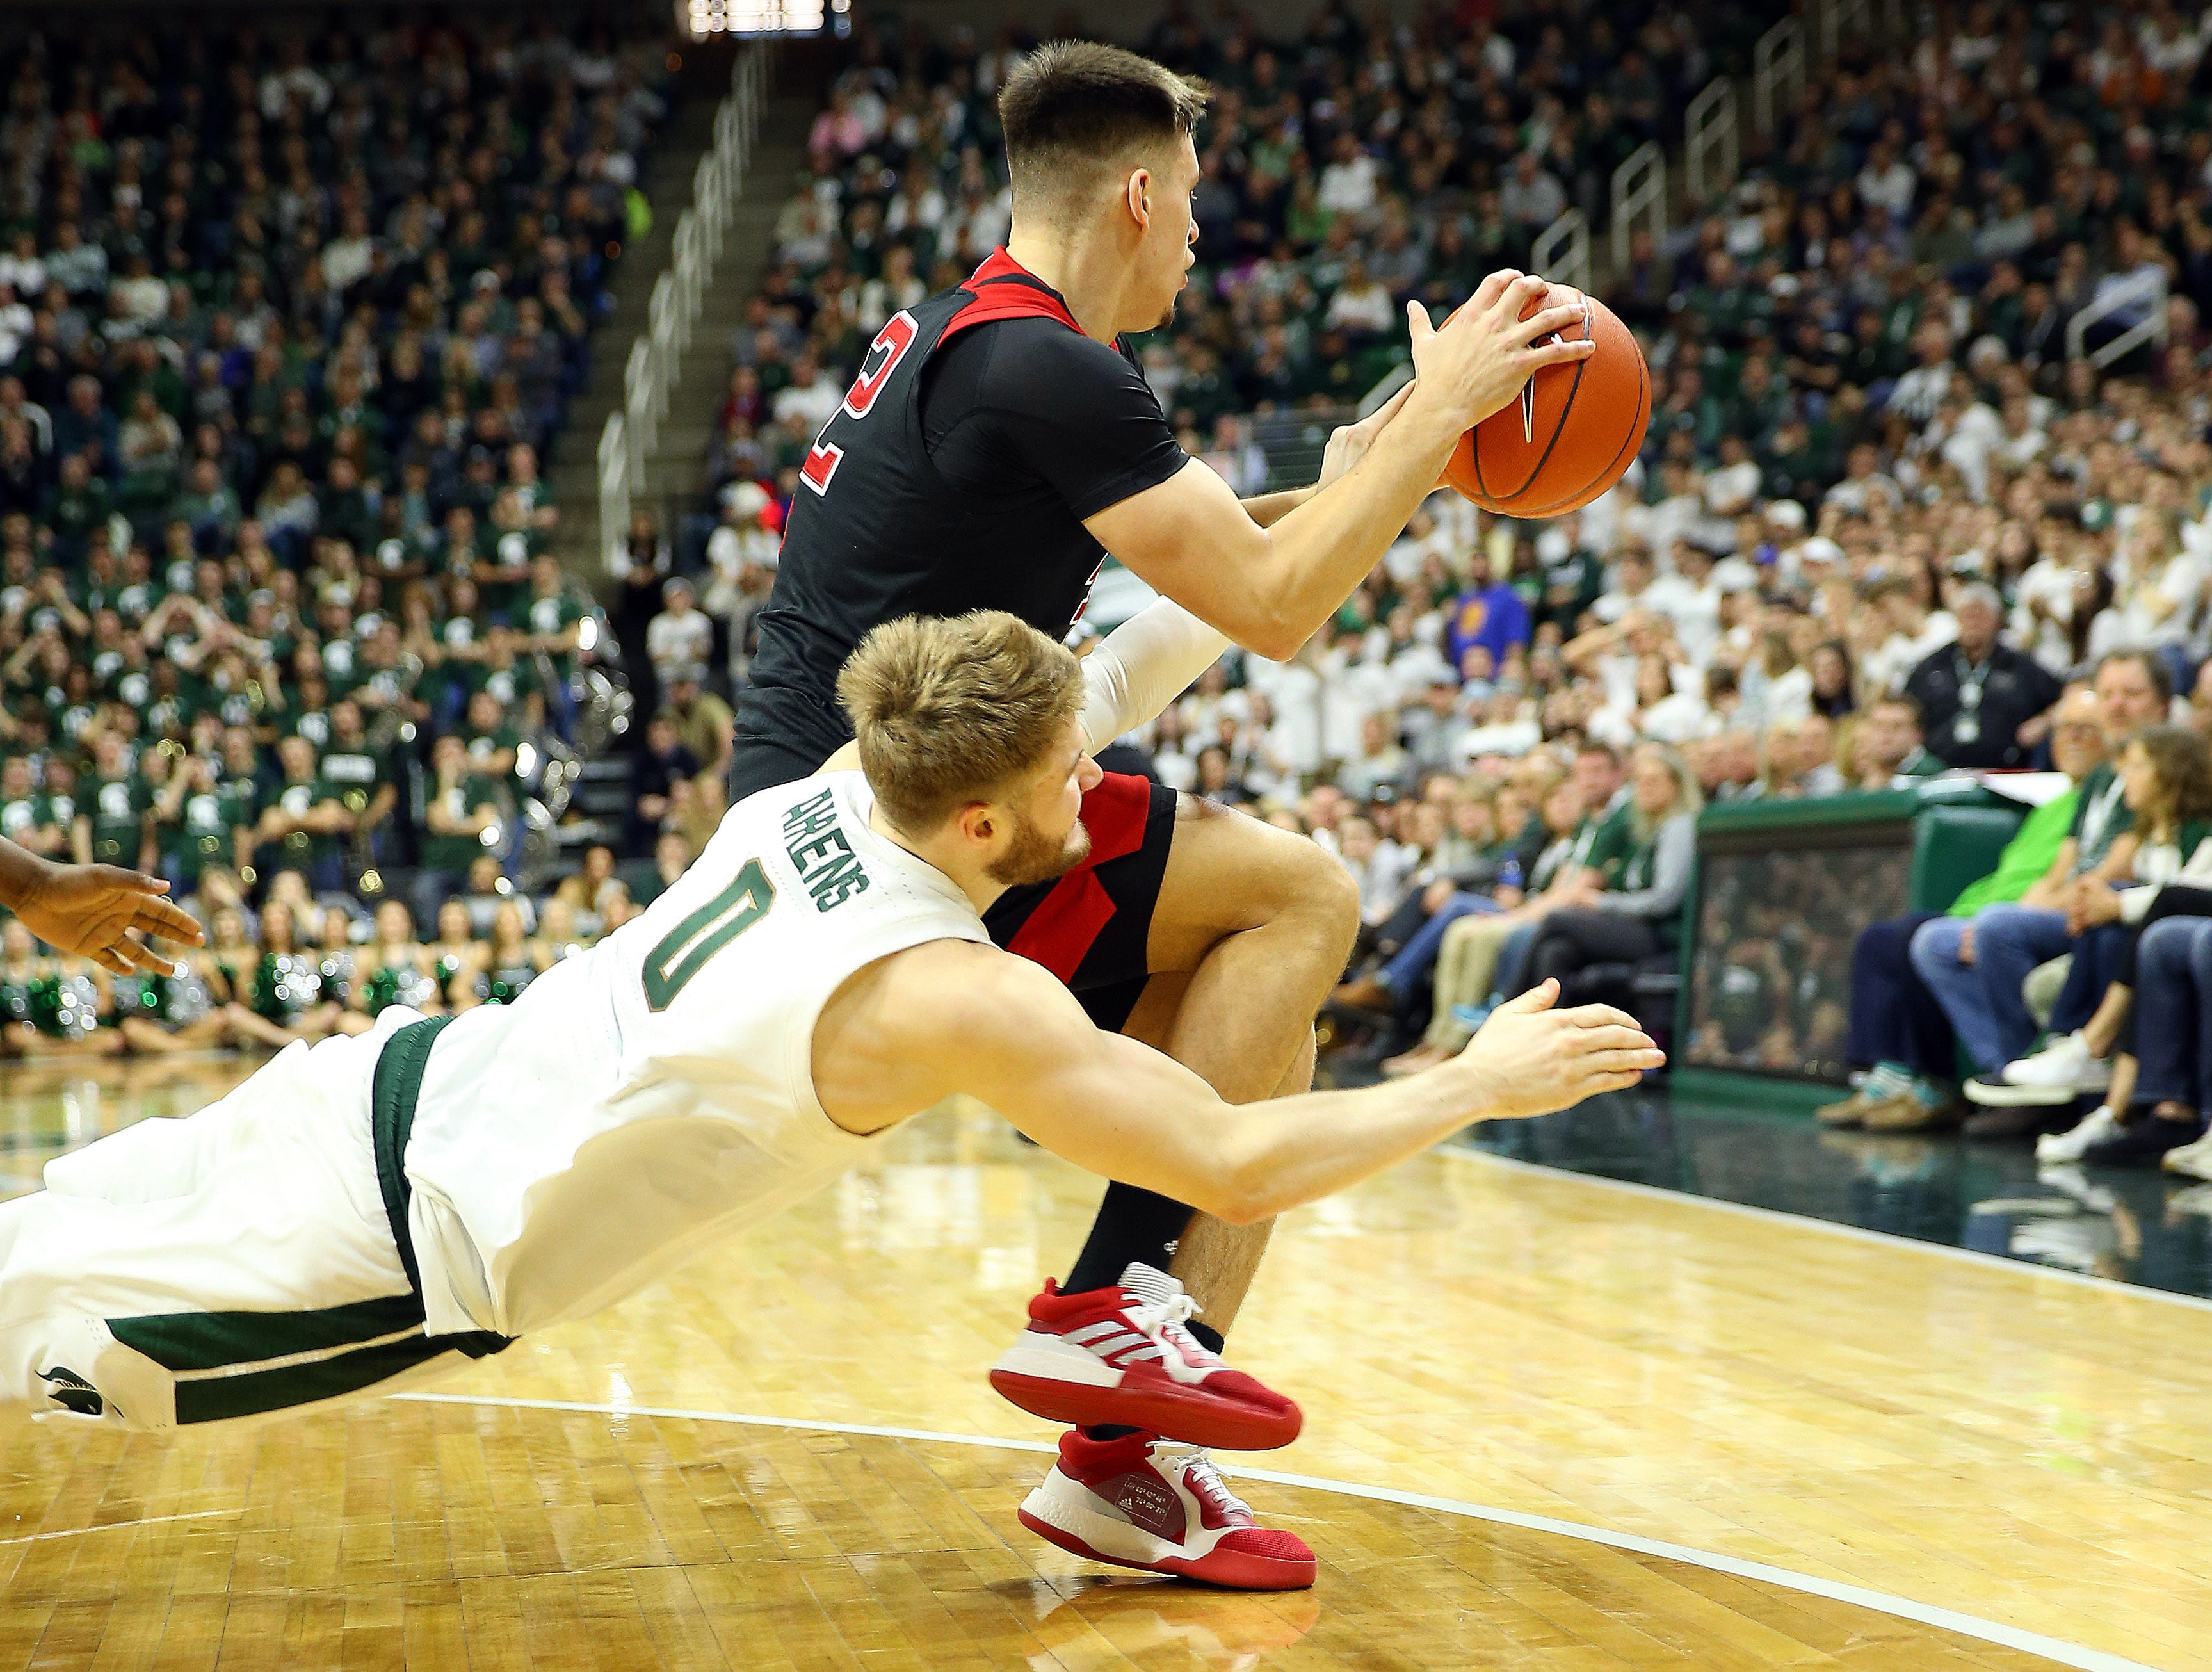 Feb 20, 2019; East Lansing, MI, USA; Michigan State Spartans forward Kyle Ahrens (0) dives after a loose ball against Rutgers Scarlet Knights center Shaquille Doorson (2) during the second half at the Breslin Center. Mandatory Credit: Mike Carter-USA TODAY Sports